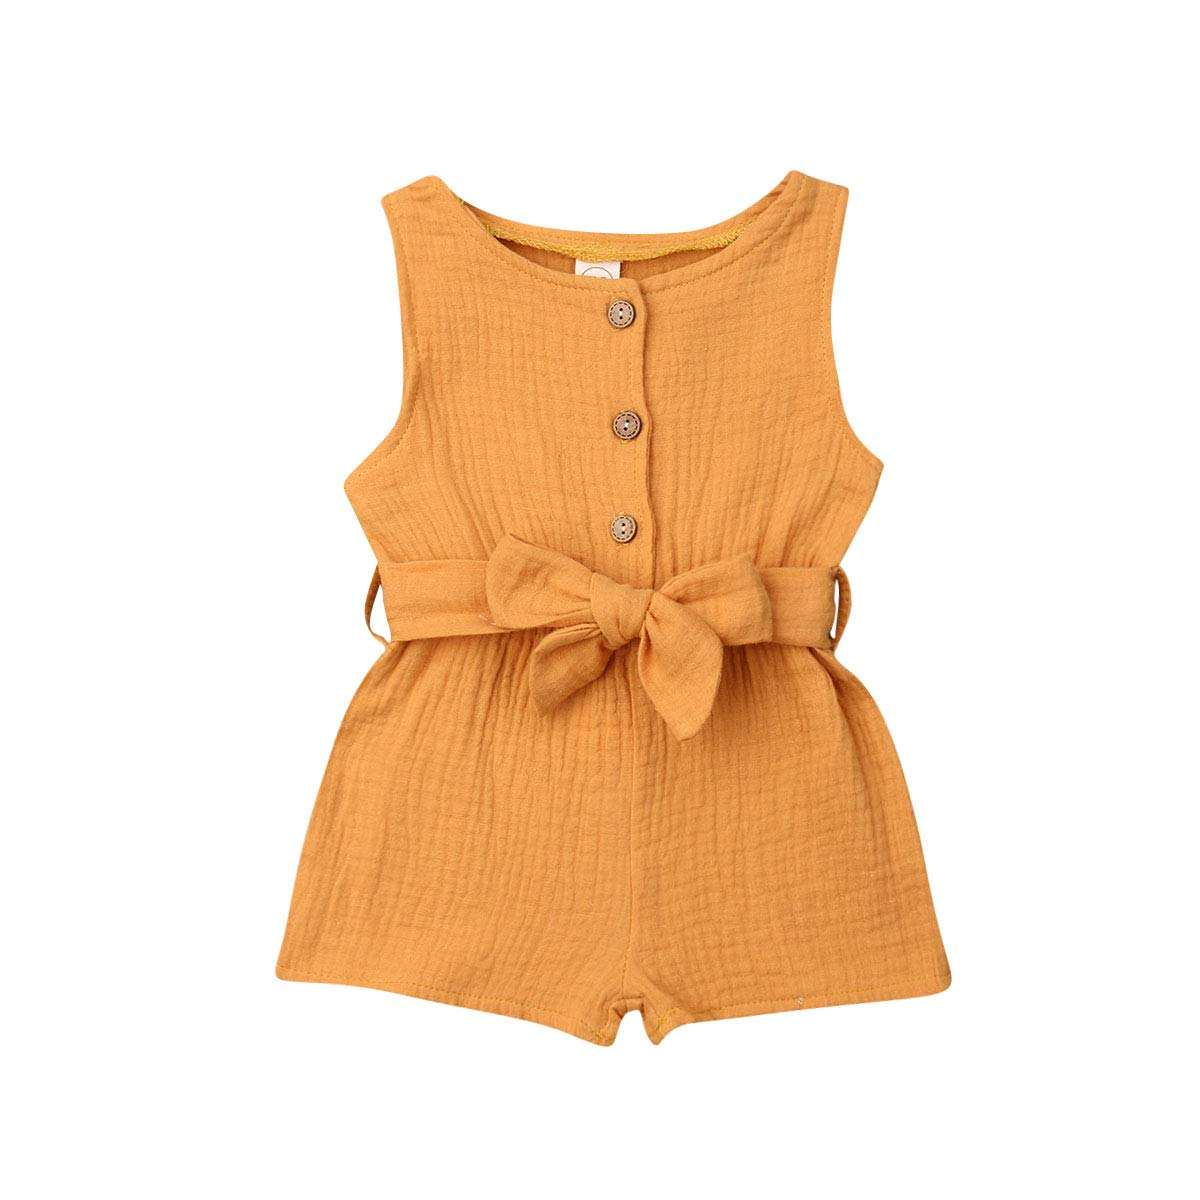 Newborn Infant Baby Girls Clothes Sleeveless Romper Solid Color Overall Bodysuit Jumpsuit Summer Outfits